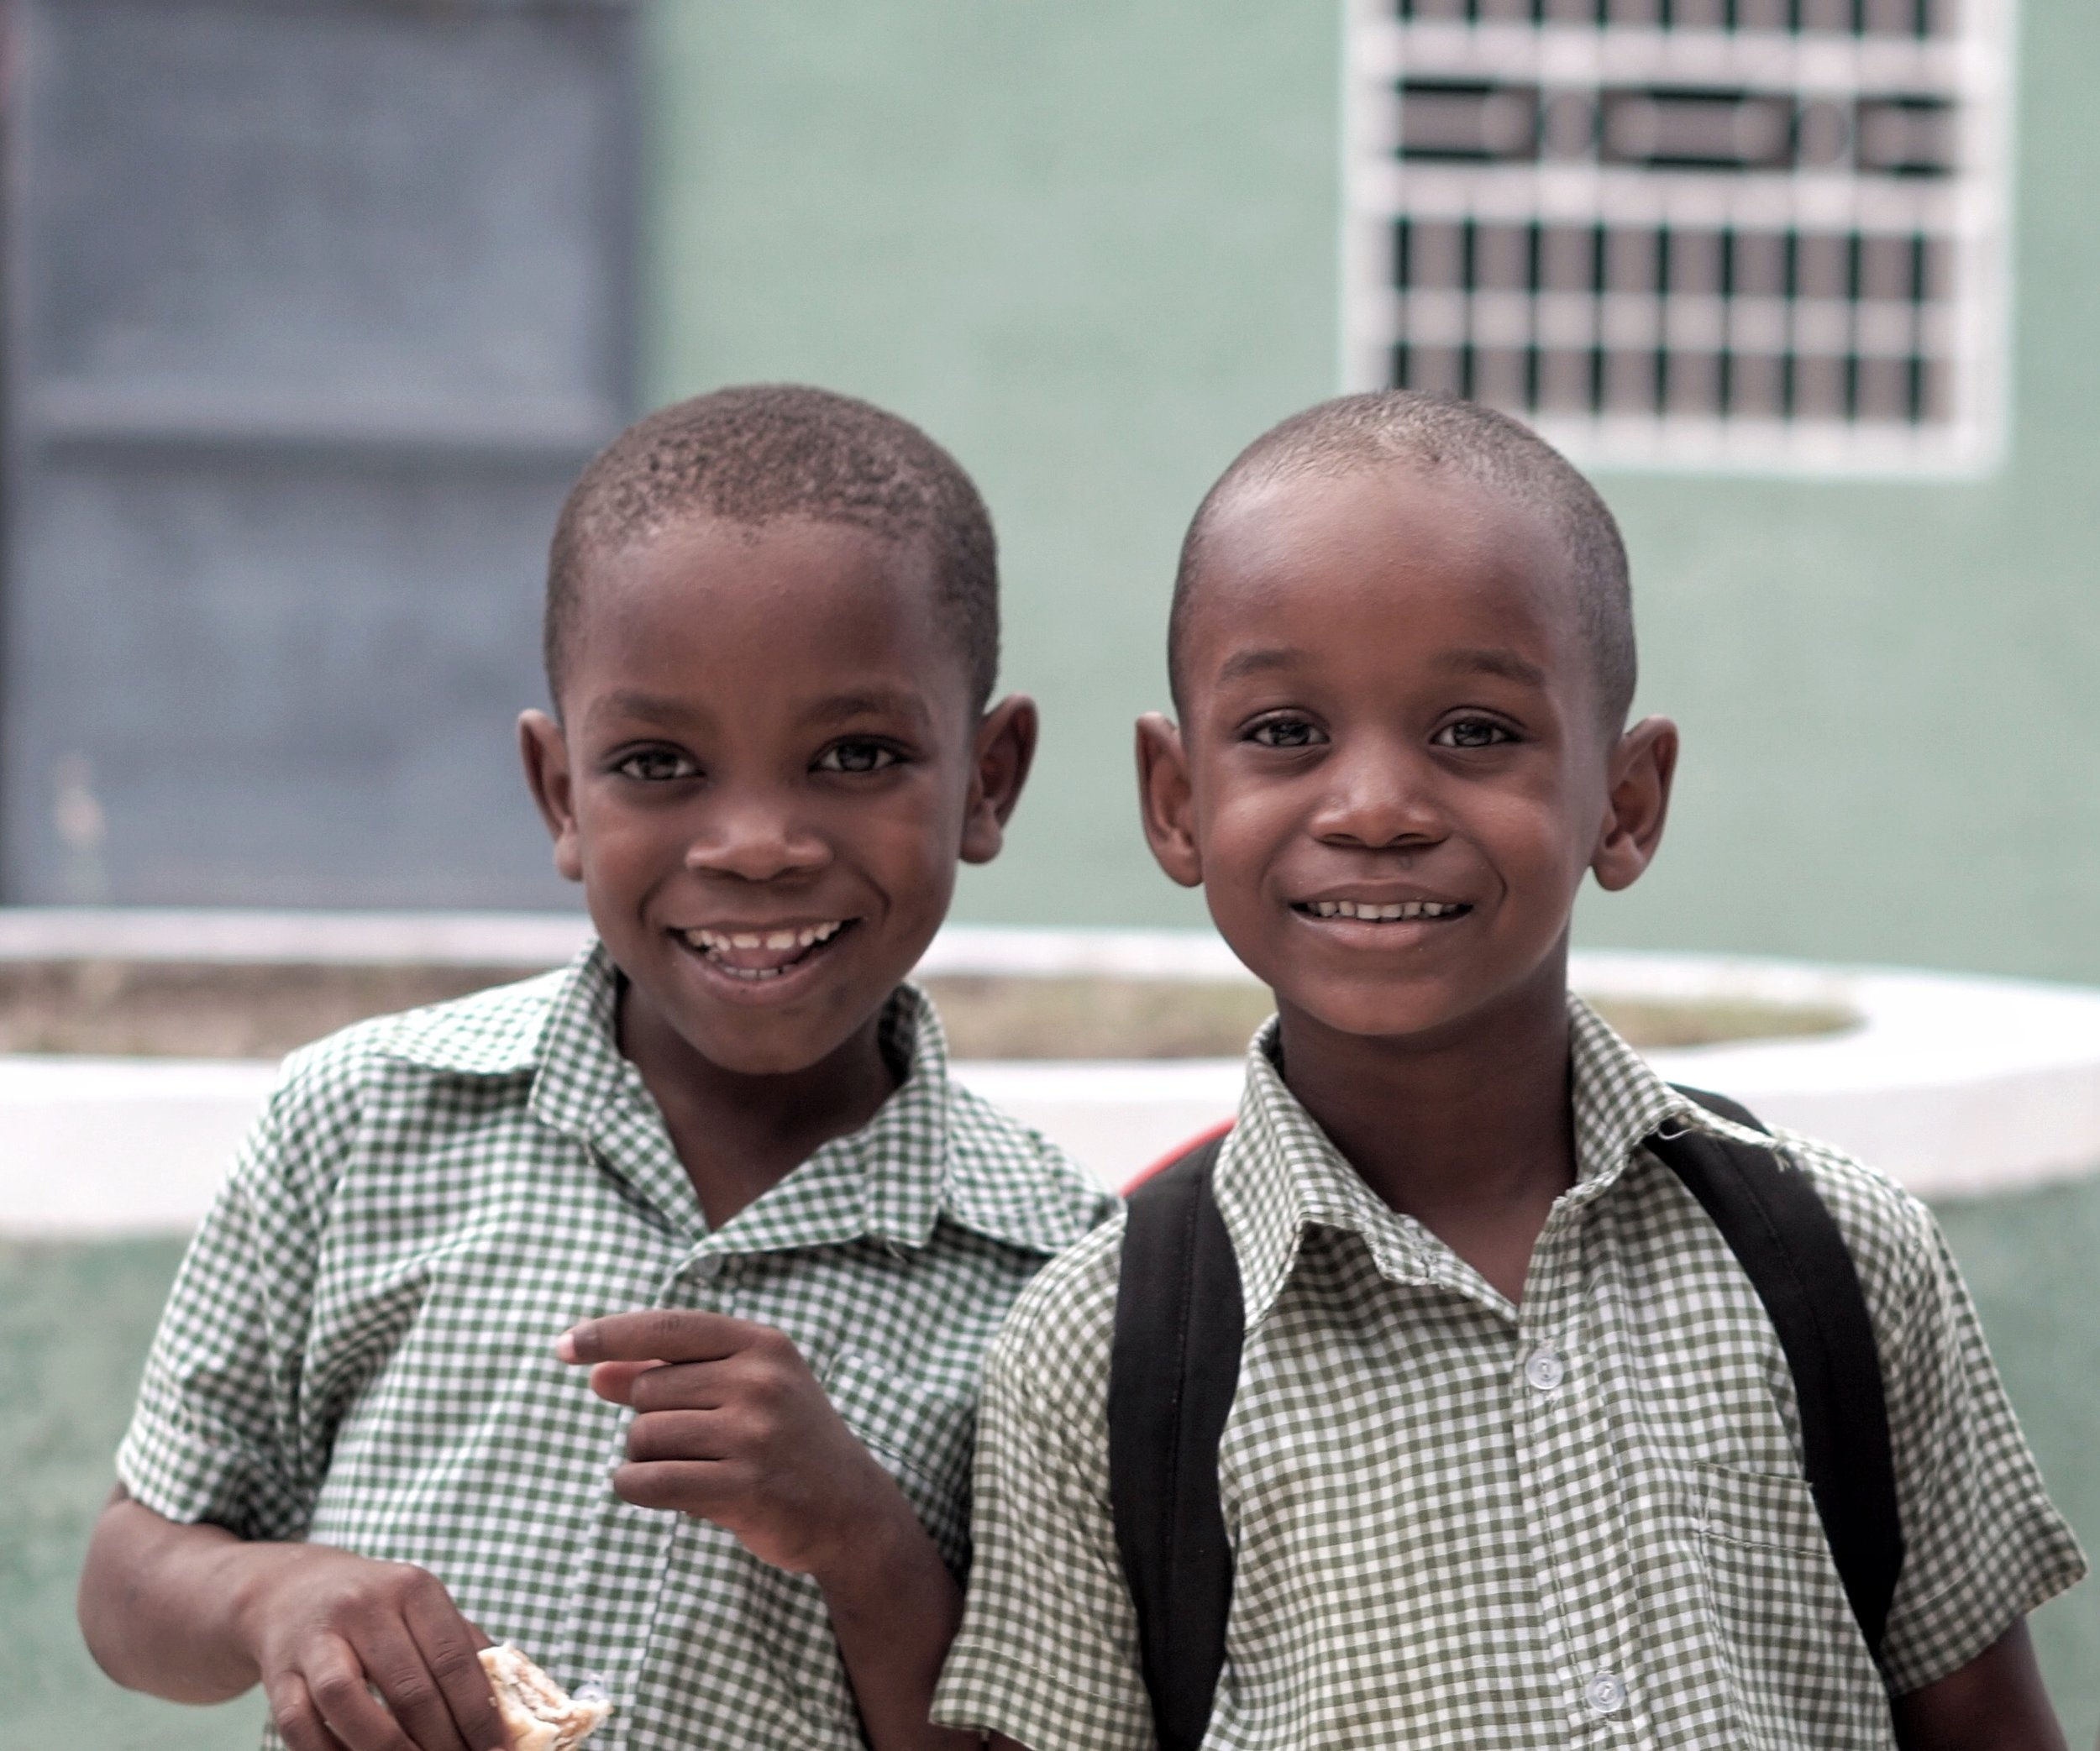 bring together donors to help children in the world's toughest places get access to education -